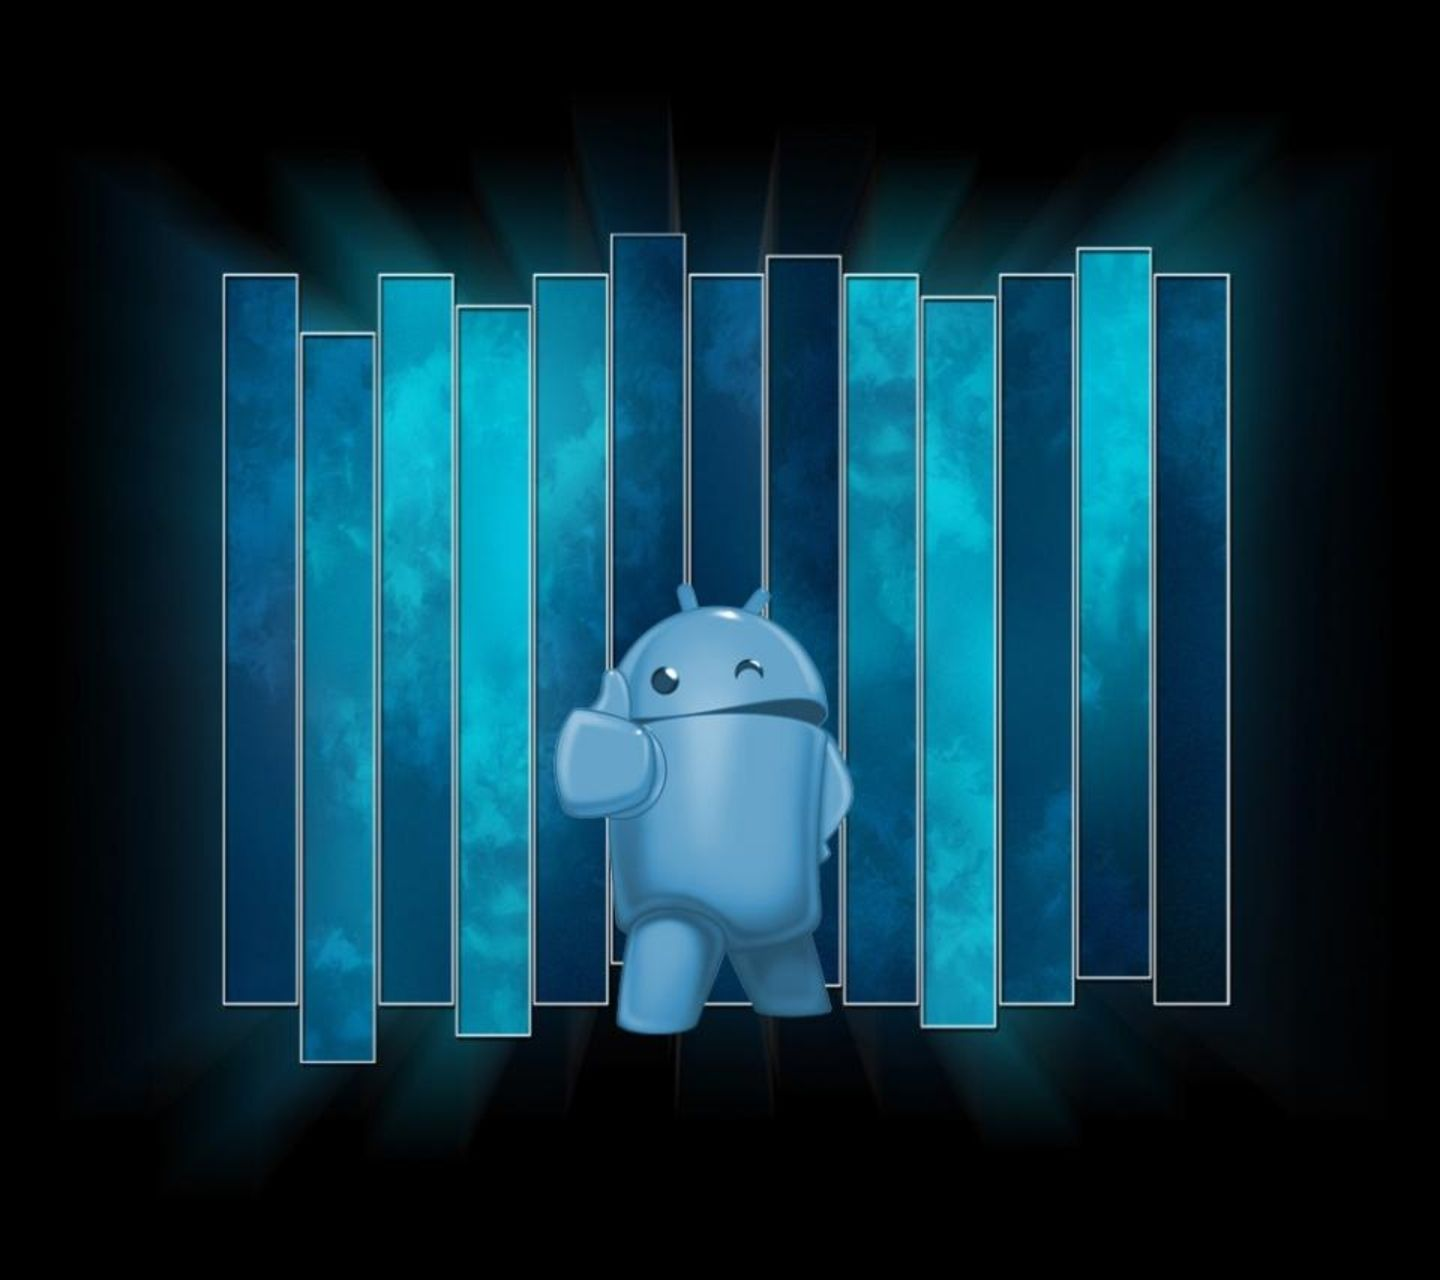 awesome android wallpapers #android #androidwallpaper | awesome